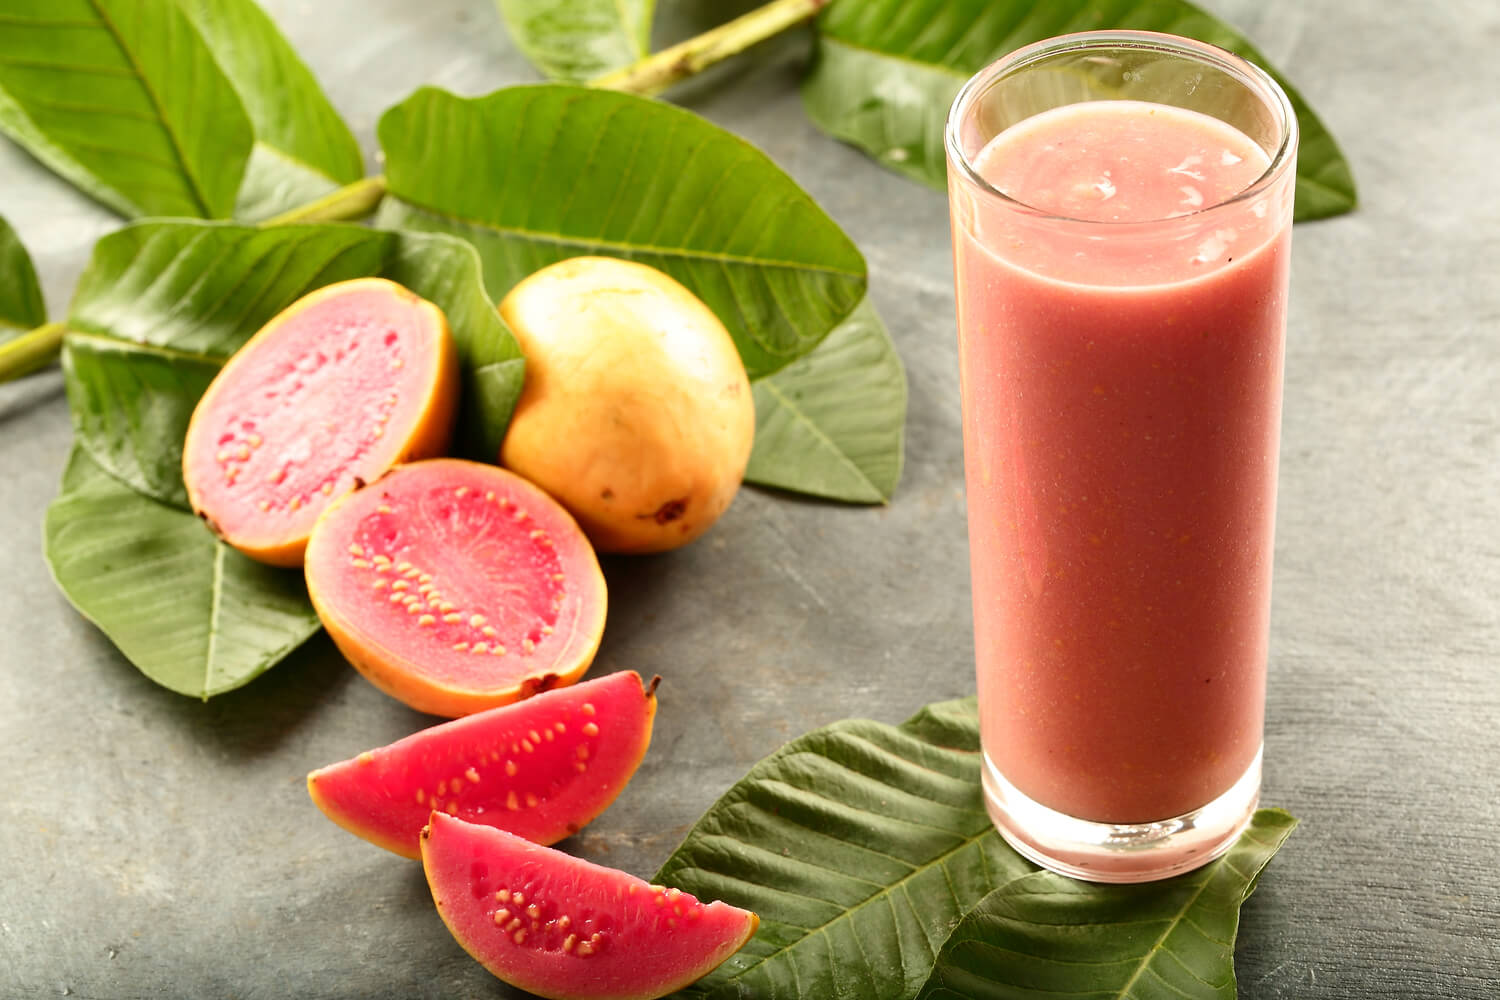 guava juice and guava